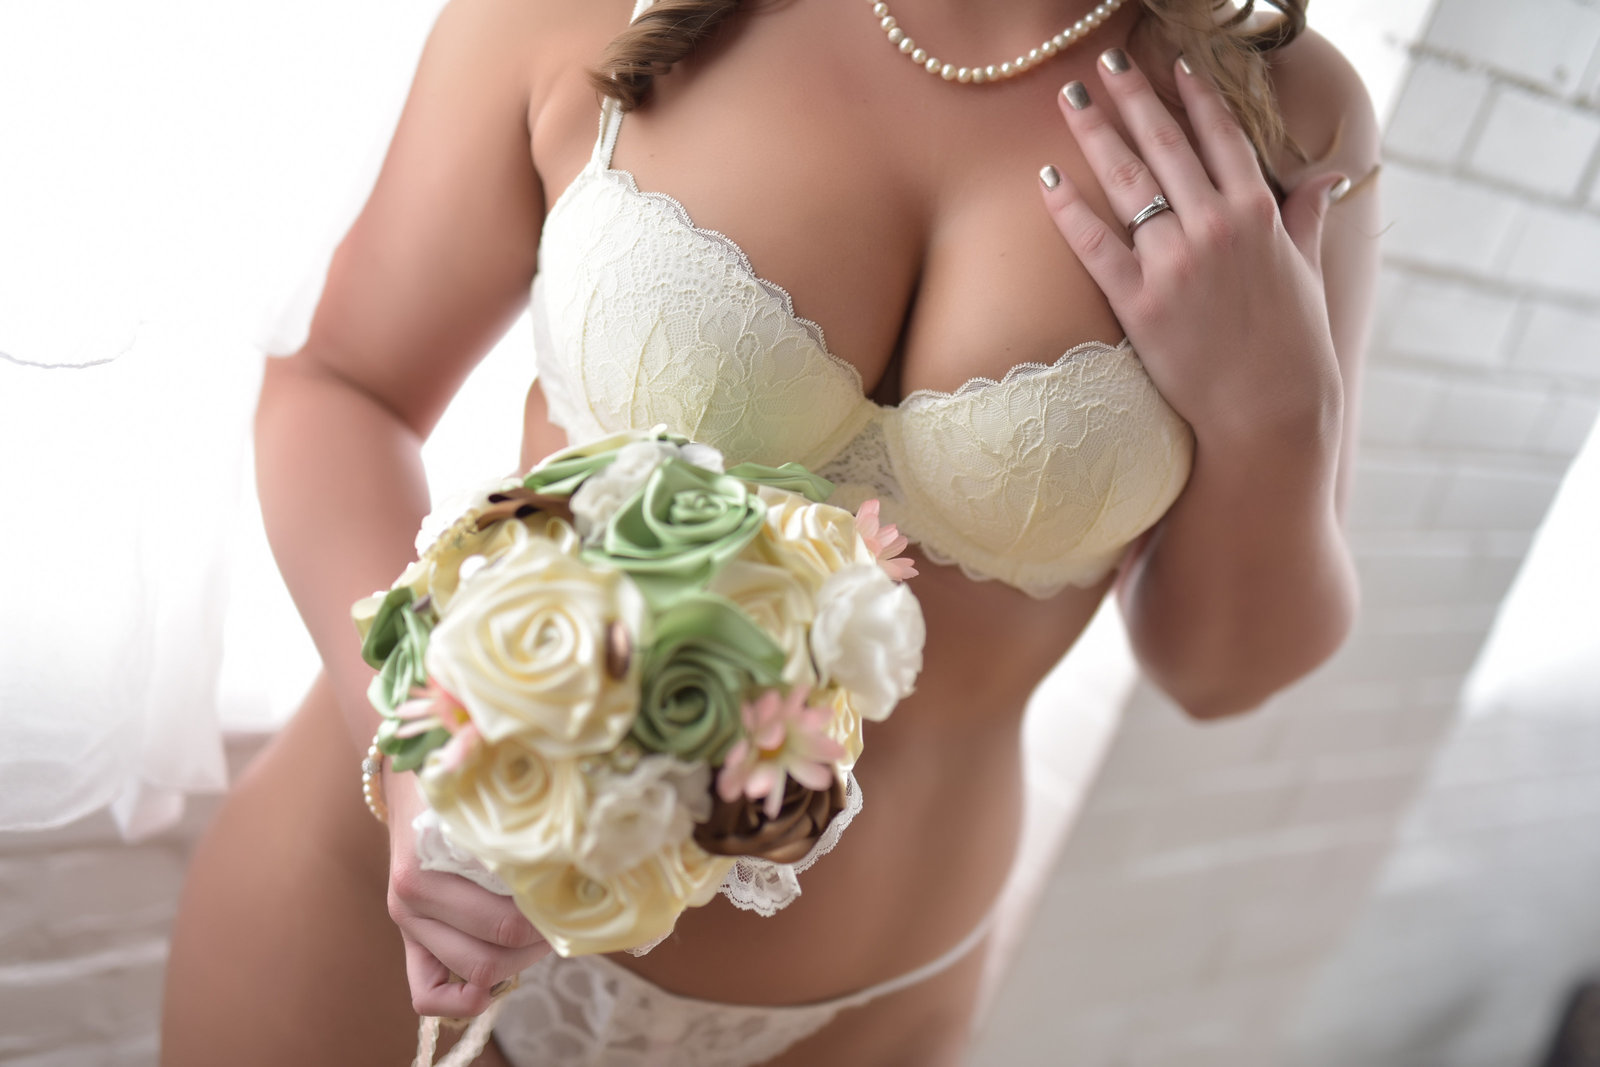 Boudoir Louisville - Boudoir Photography Studio - Lexington, Cincinnati & Indianapolis-599